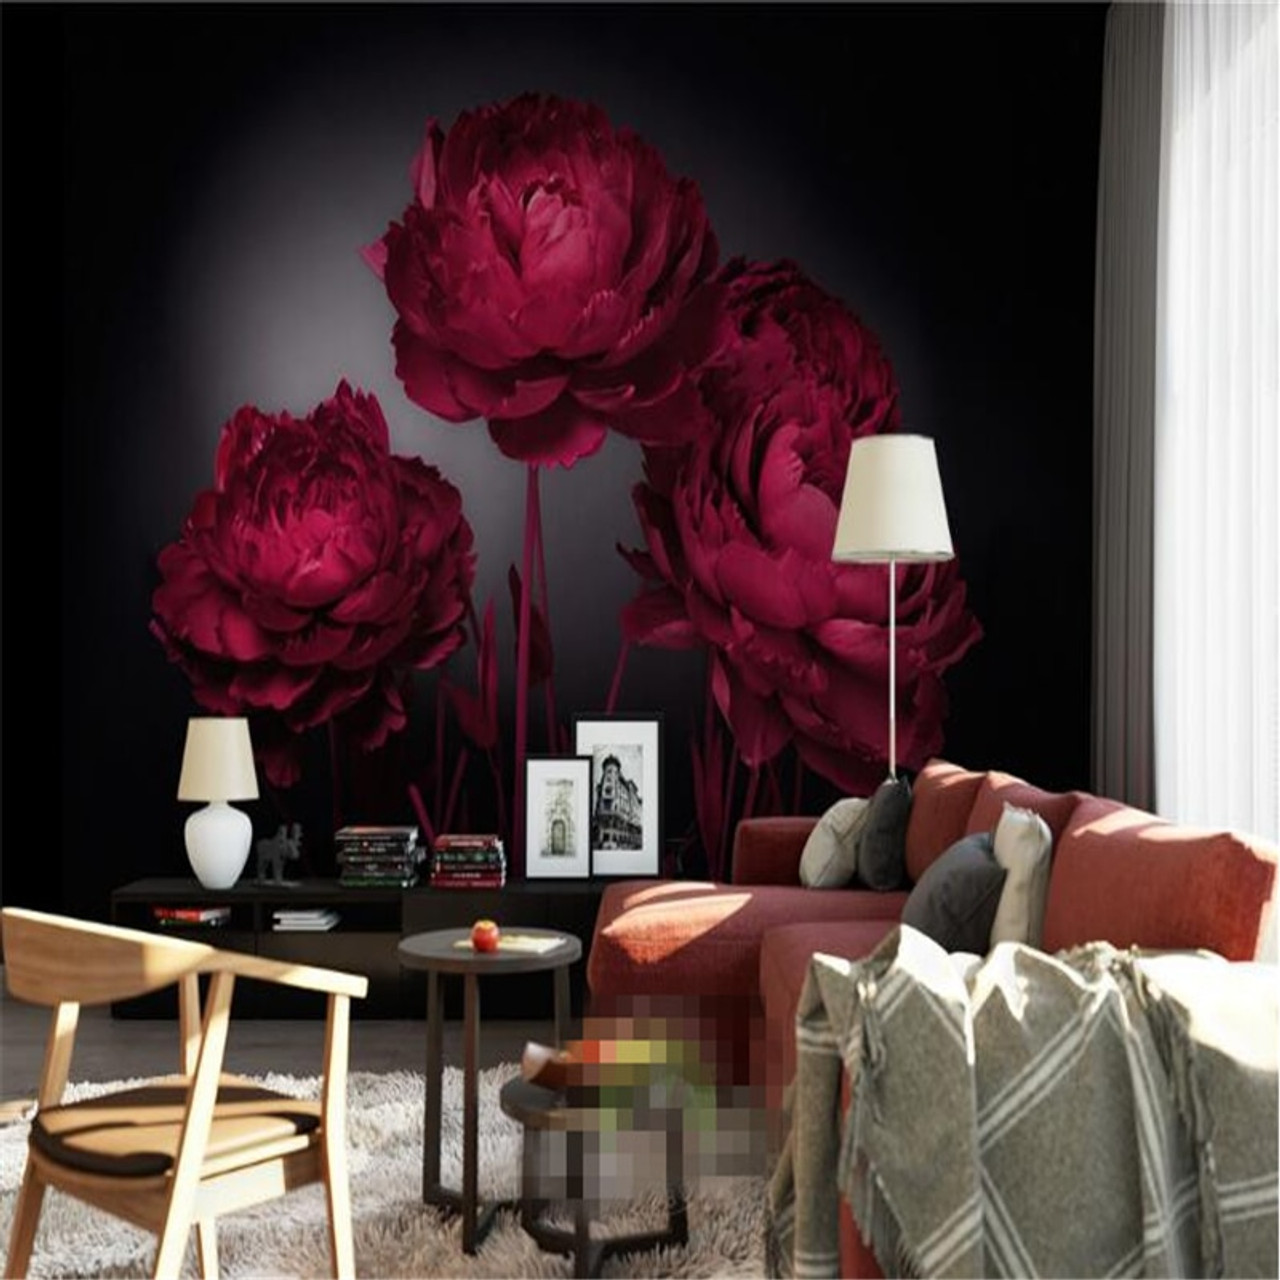 Beibehang 3d Wallpaper Romantic Red Roses Tv Background Wall Living Room Bedroom Background Mural Photo Wallpaper For Walls 3 D Onshopdeals Com